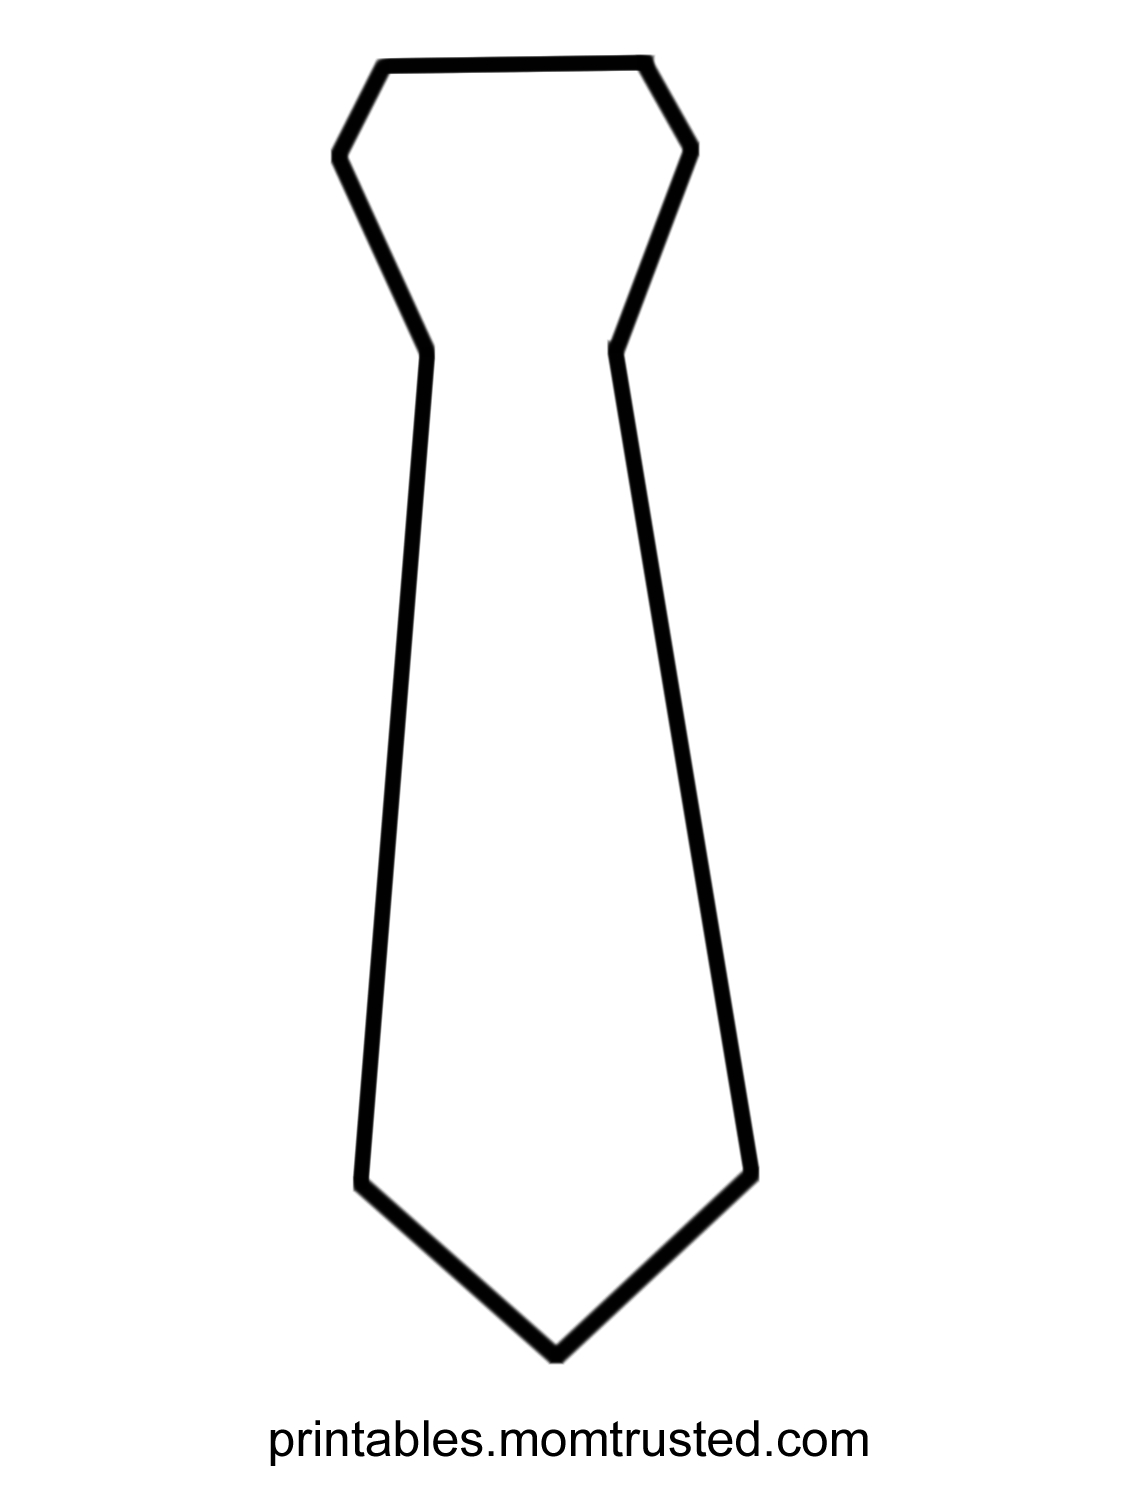 Fathers Day Tie Coloring Pages - Free Large Images | Teaching Ideas - Free Printable Tie Template